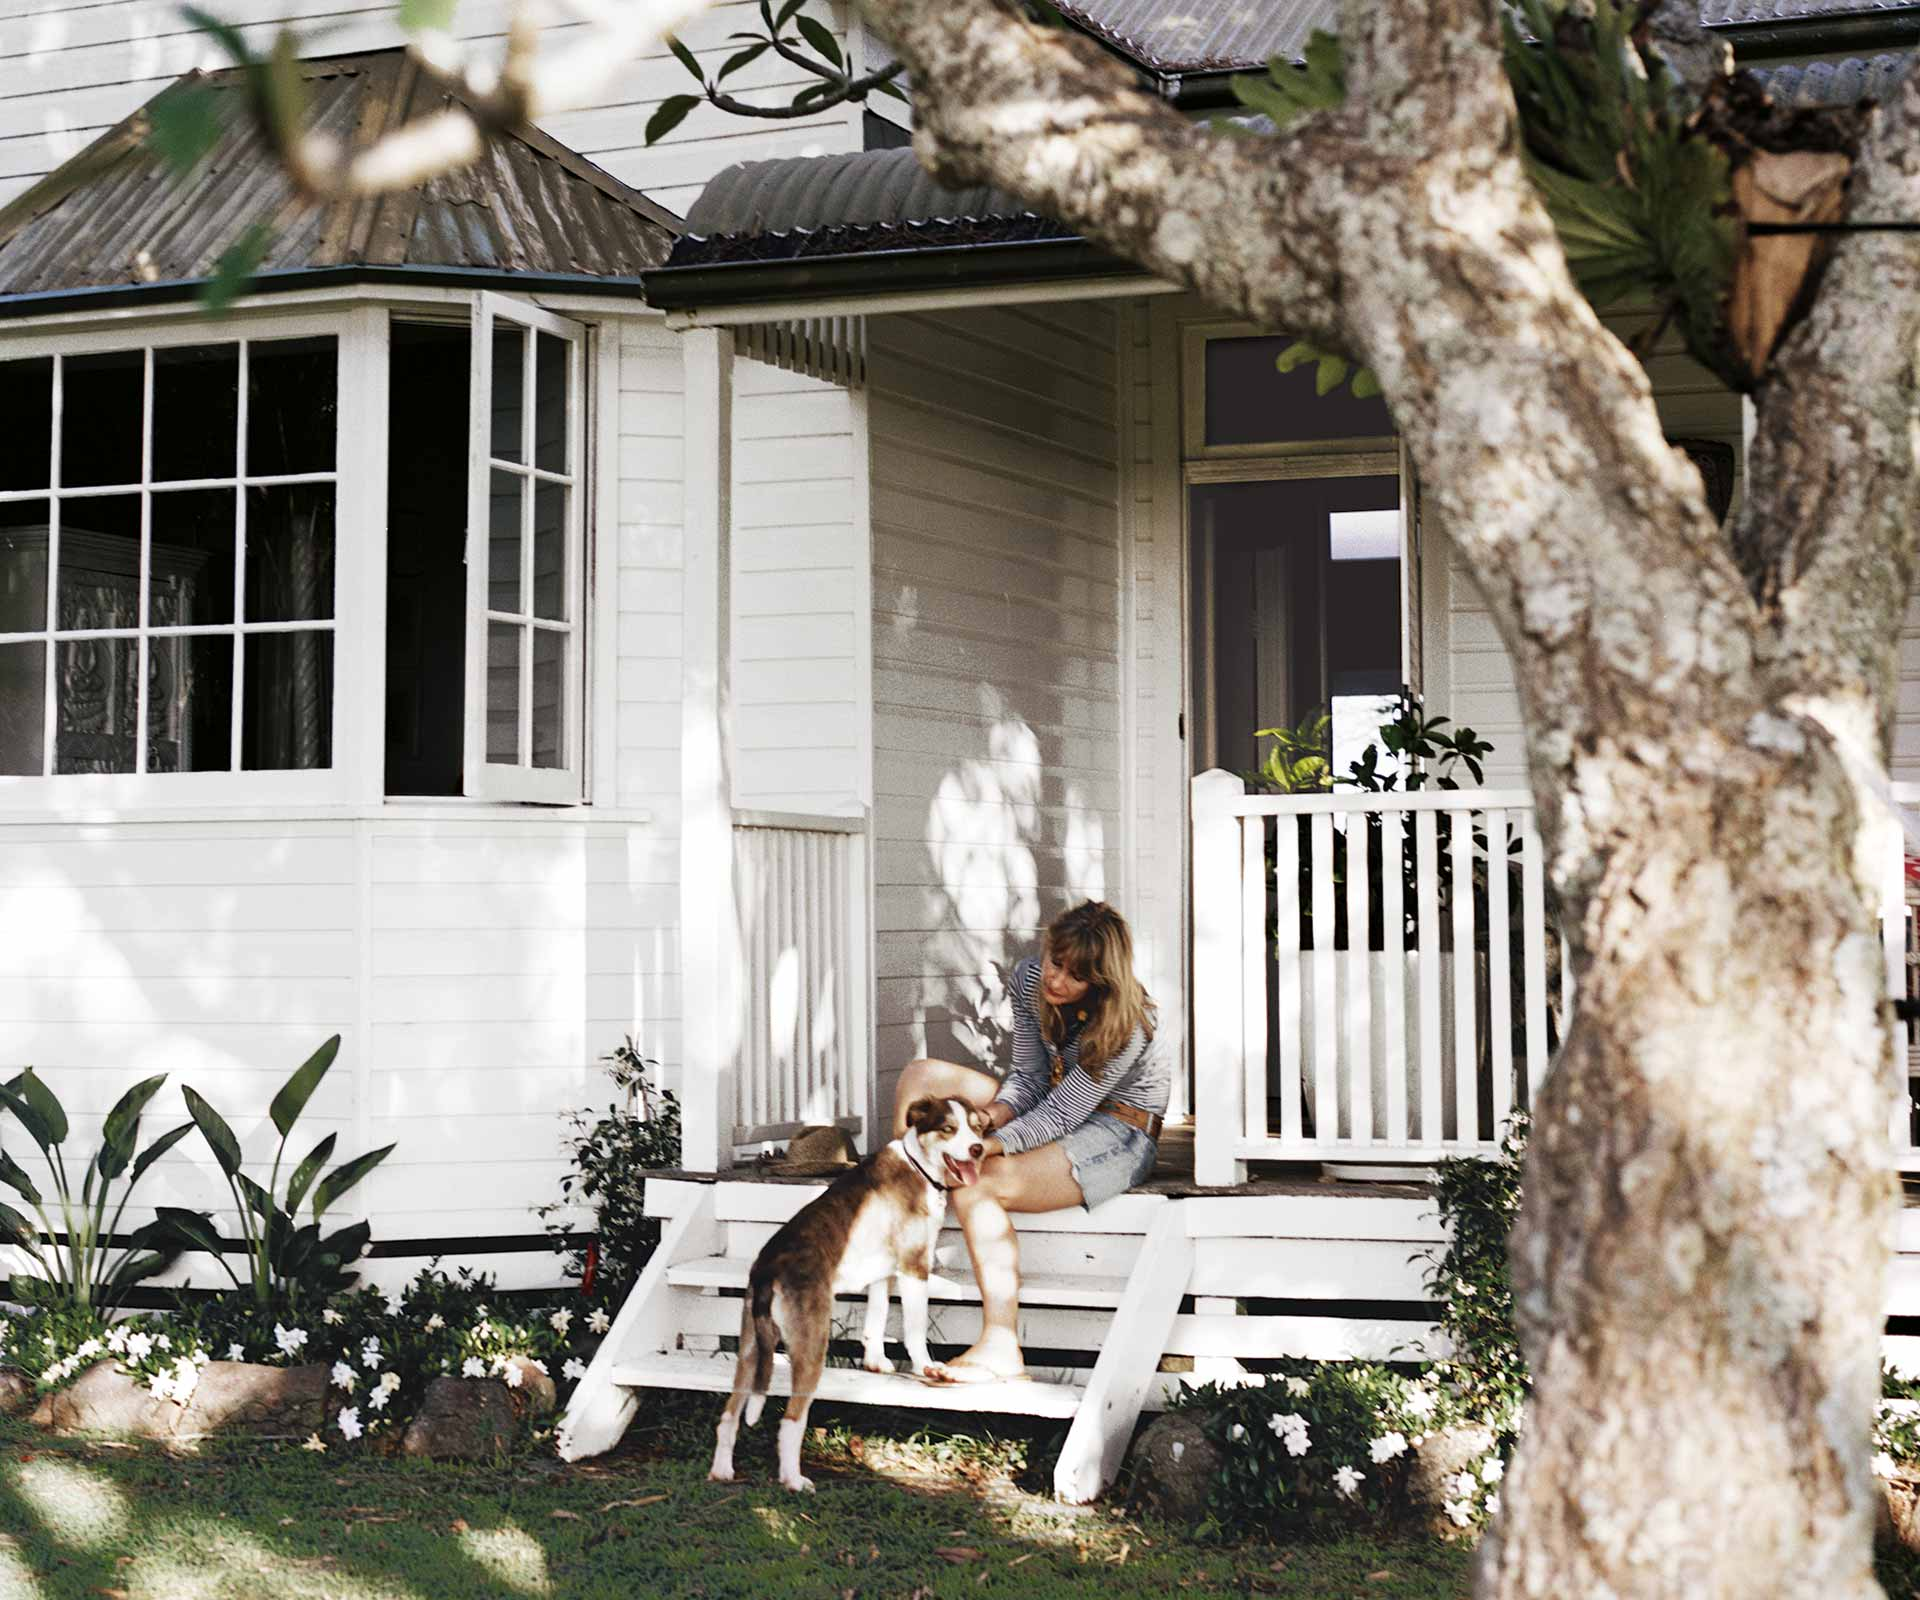 8 of the best exterior wall cladding ideas for Australian homes